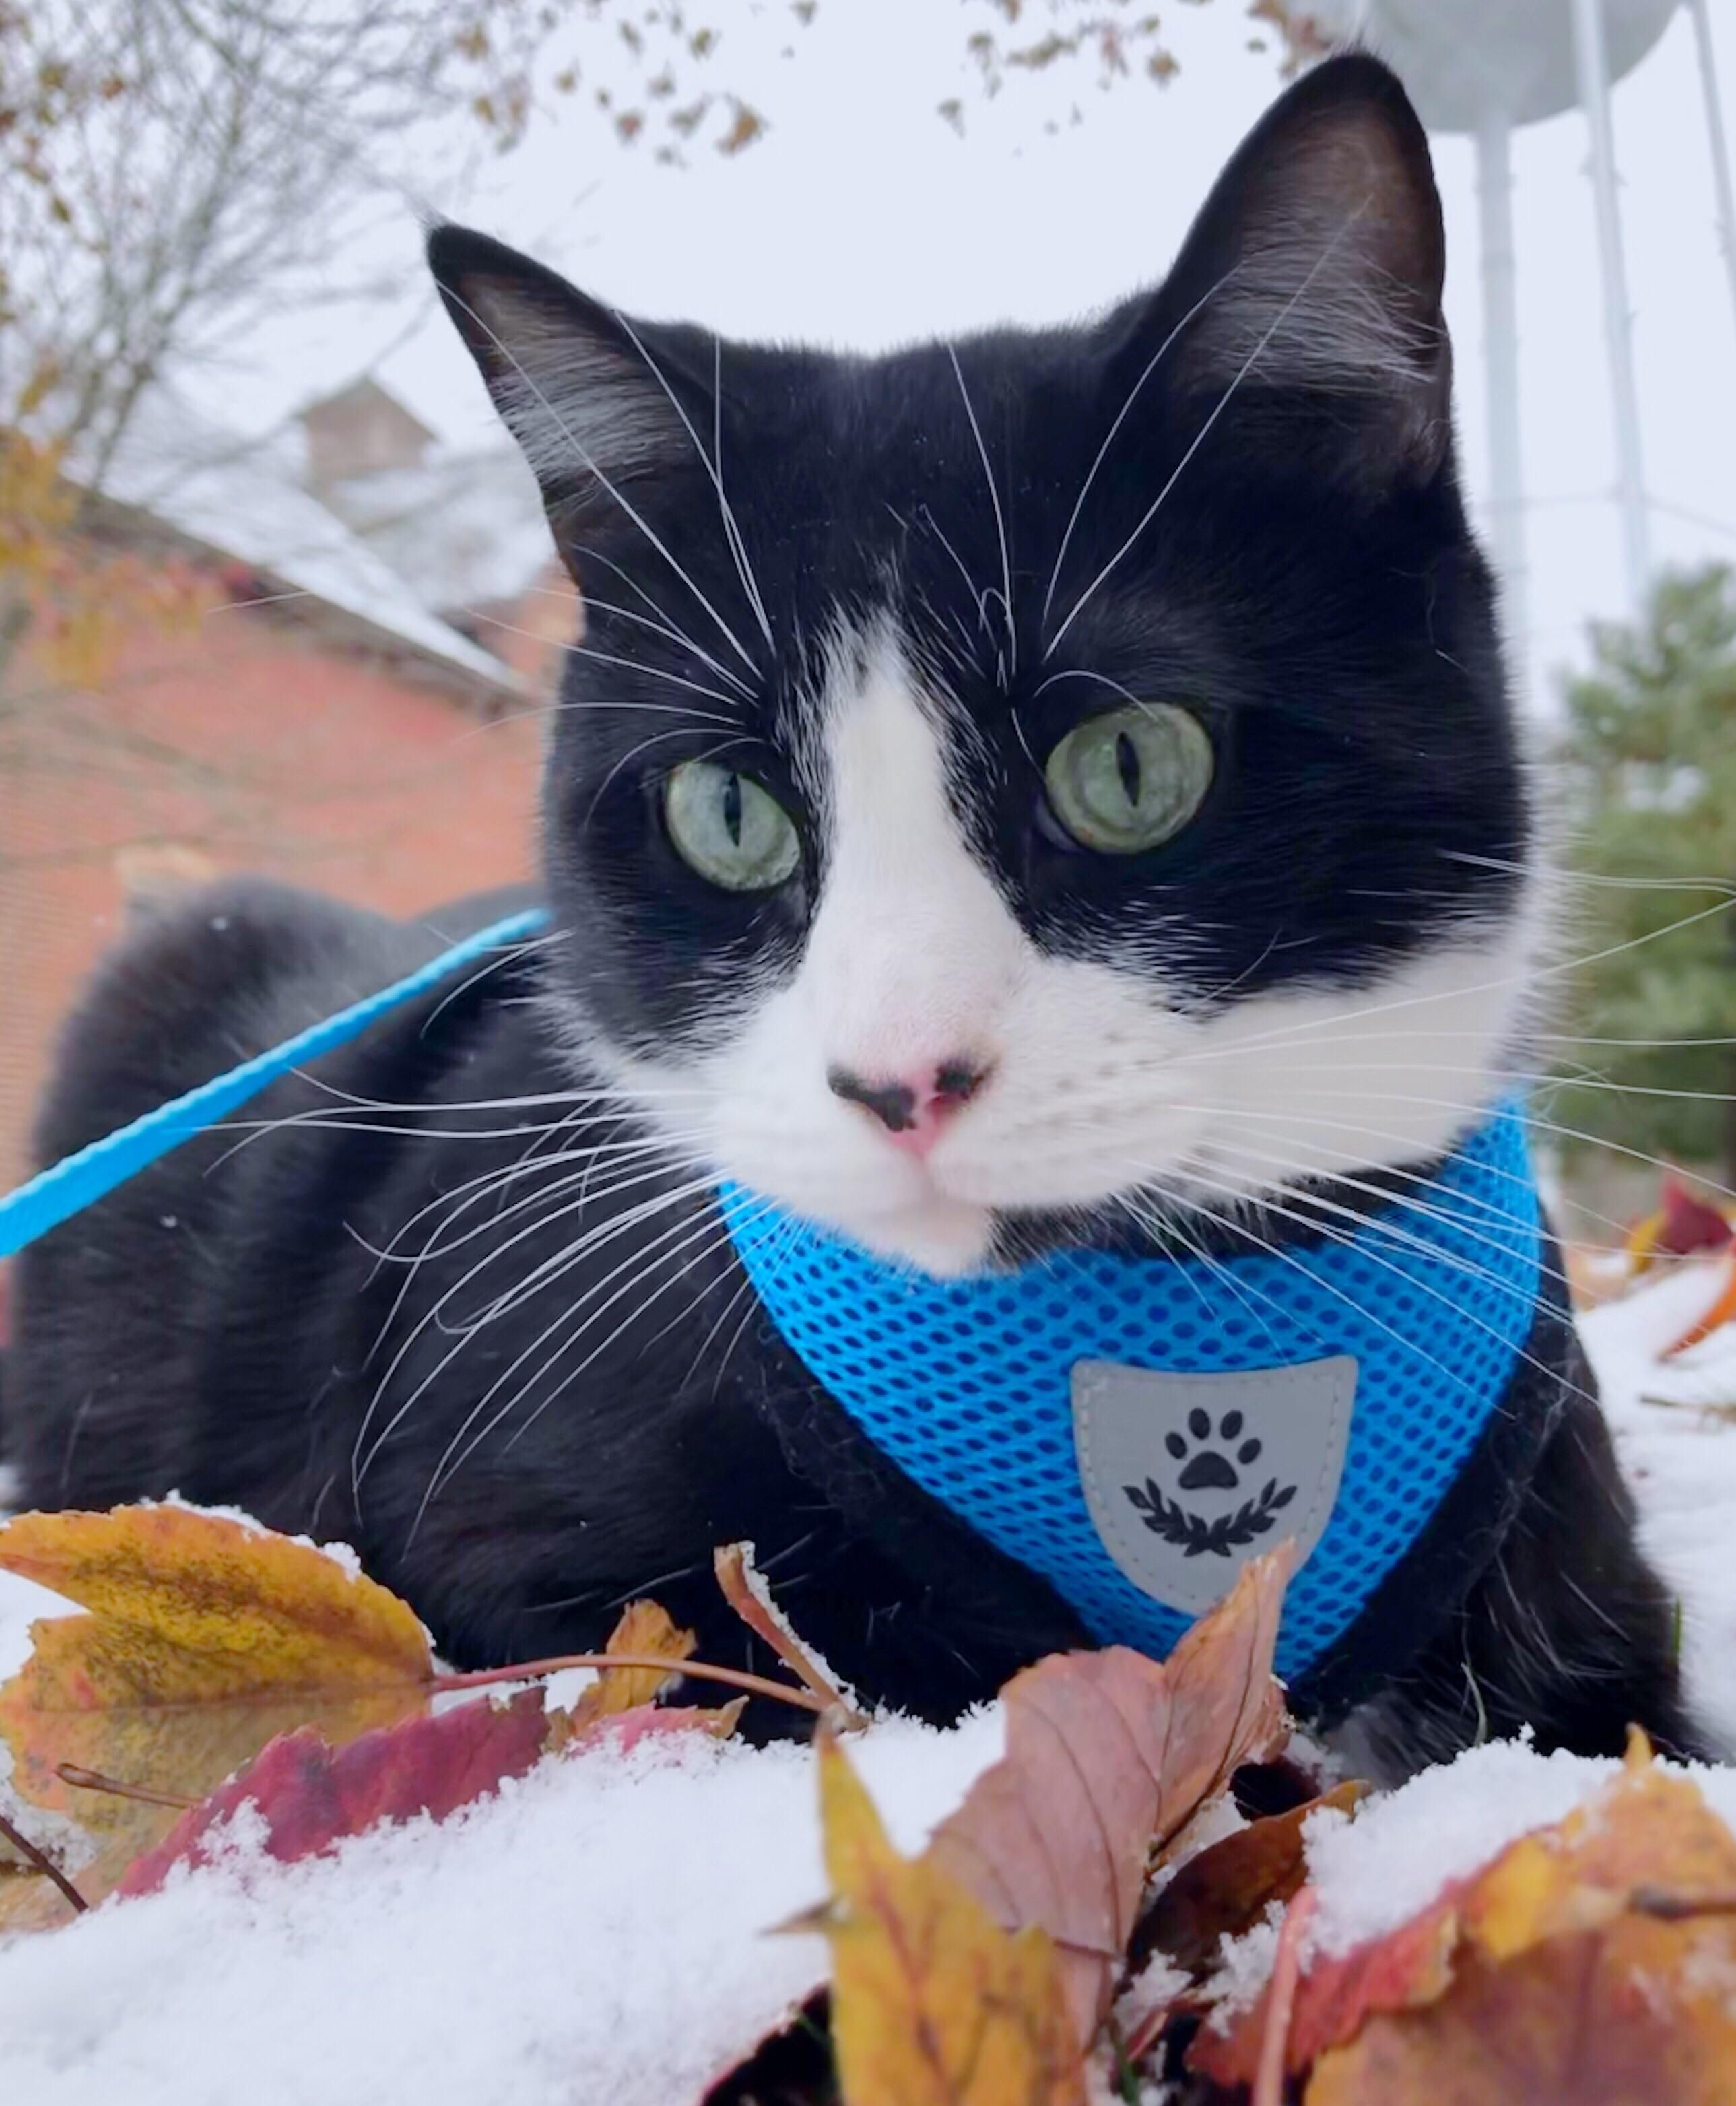 The Outernet Is Too Cold Return Me The Warmth Please Https Ift Tt 2fi98ae Cute Cats Cats And Kittens Cat Pictures For Kids